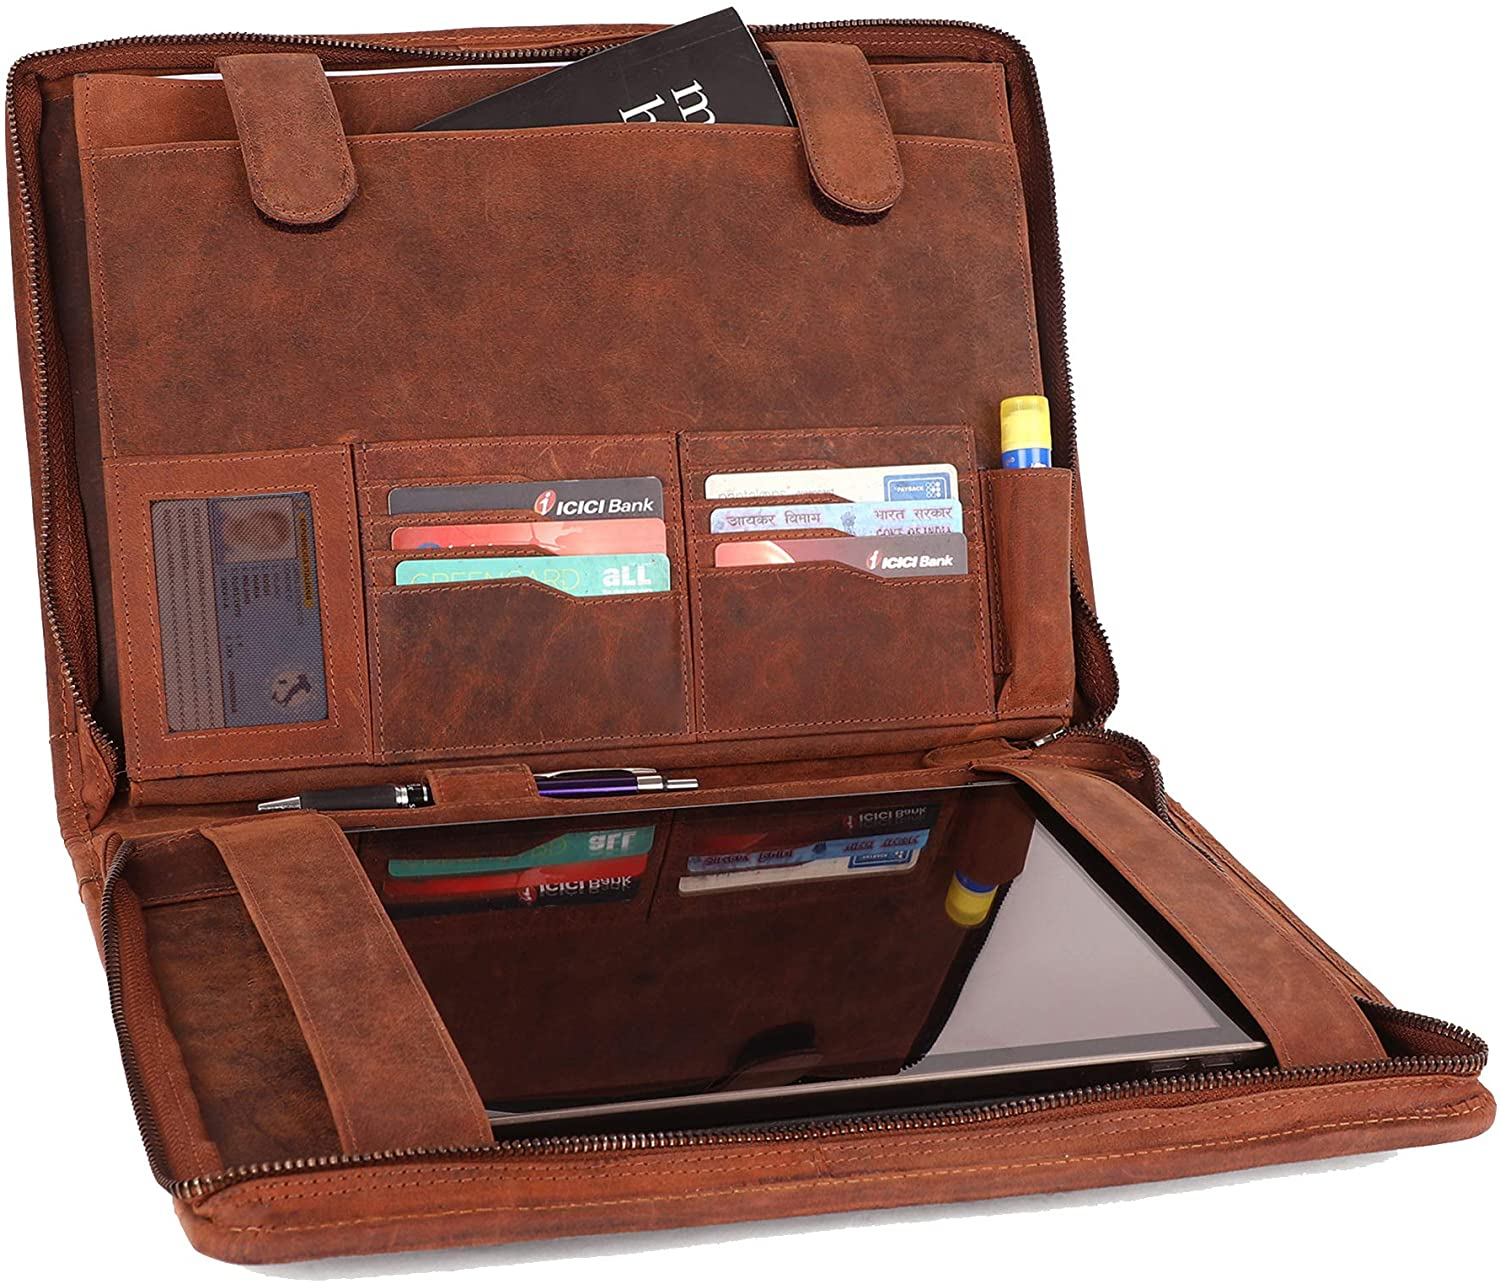 Supreme Business Portfolio by Rustic Town | Professional Organizer for Men & Women | Durable Leather Padfolio | Easy to Carry with A Zippered Closure | Many Slots, Compartments & Holders